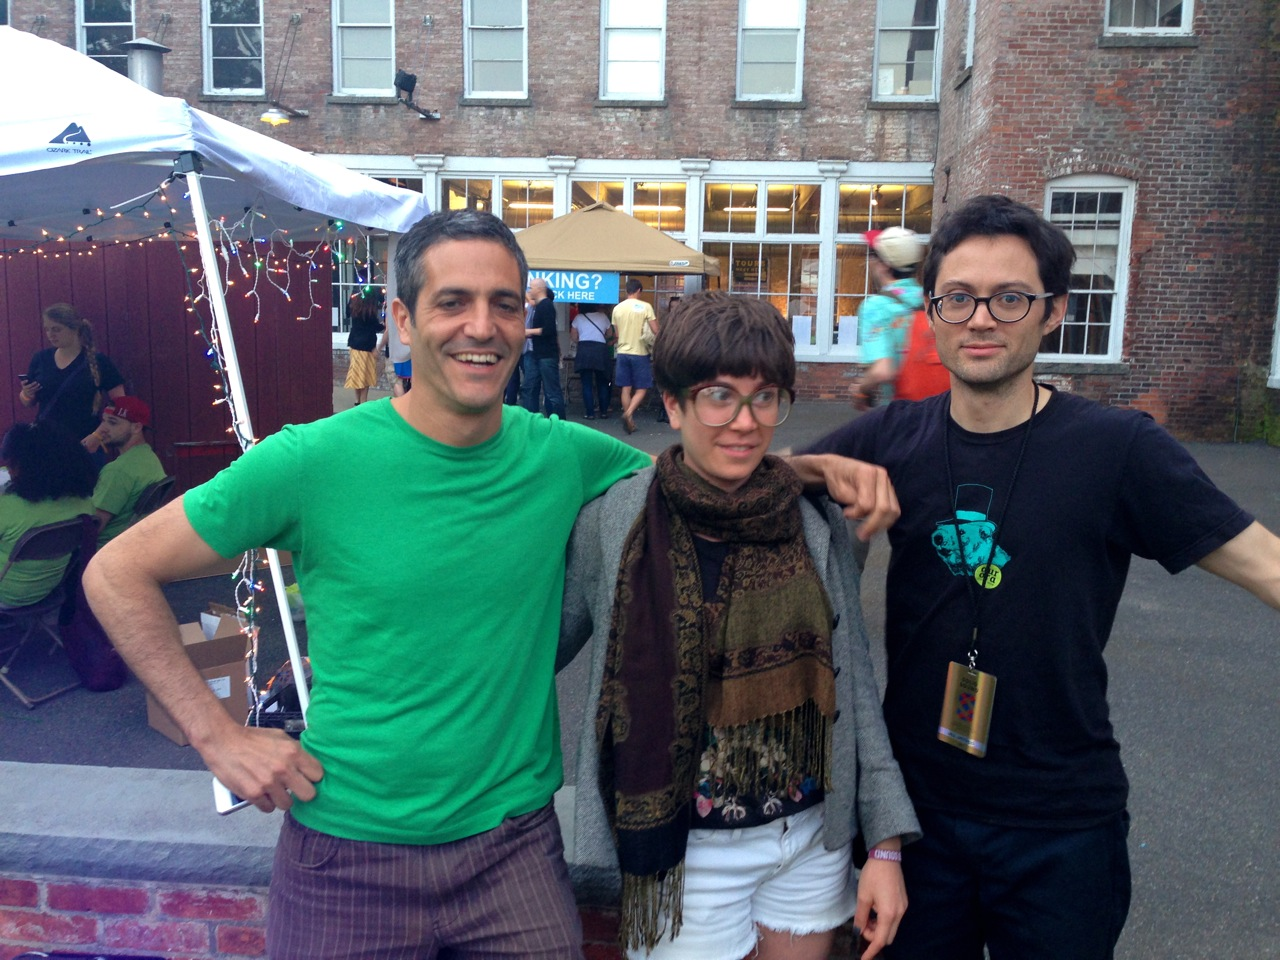 FIlmmaker Sam Green, dancer and artist Catherine Galasso, and filmmaker Brent Green (Photo by Michelle Aldredge)